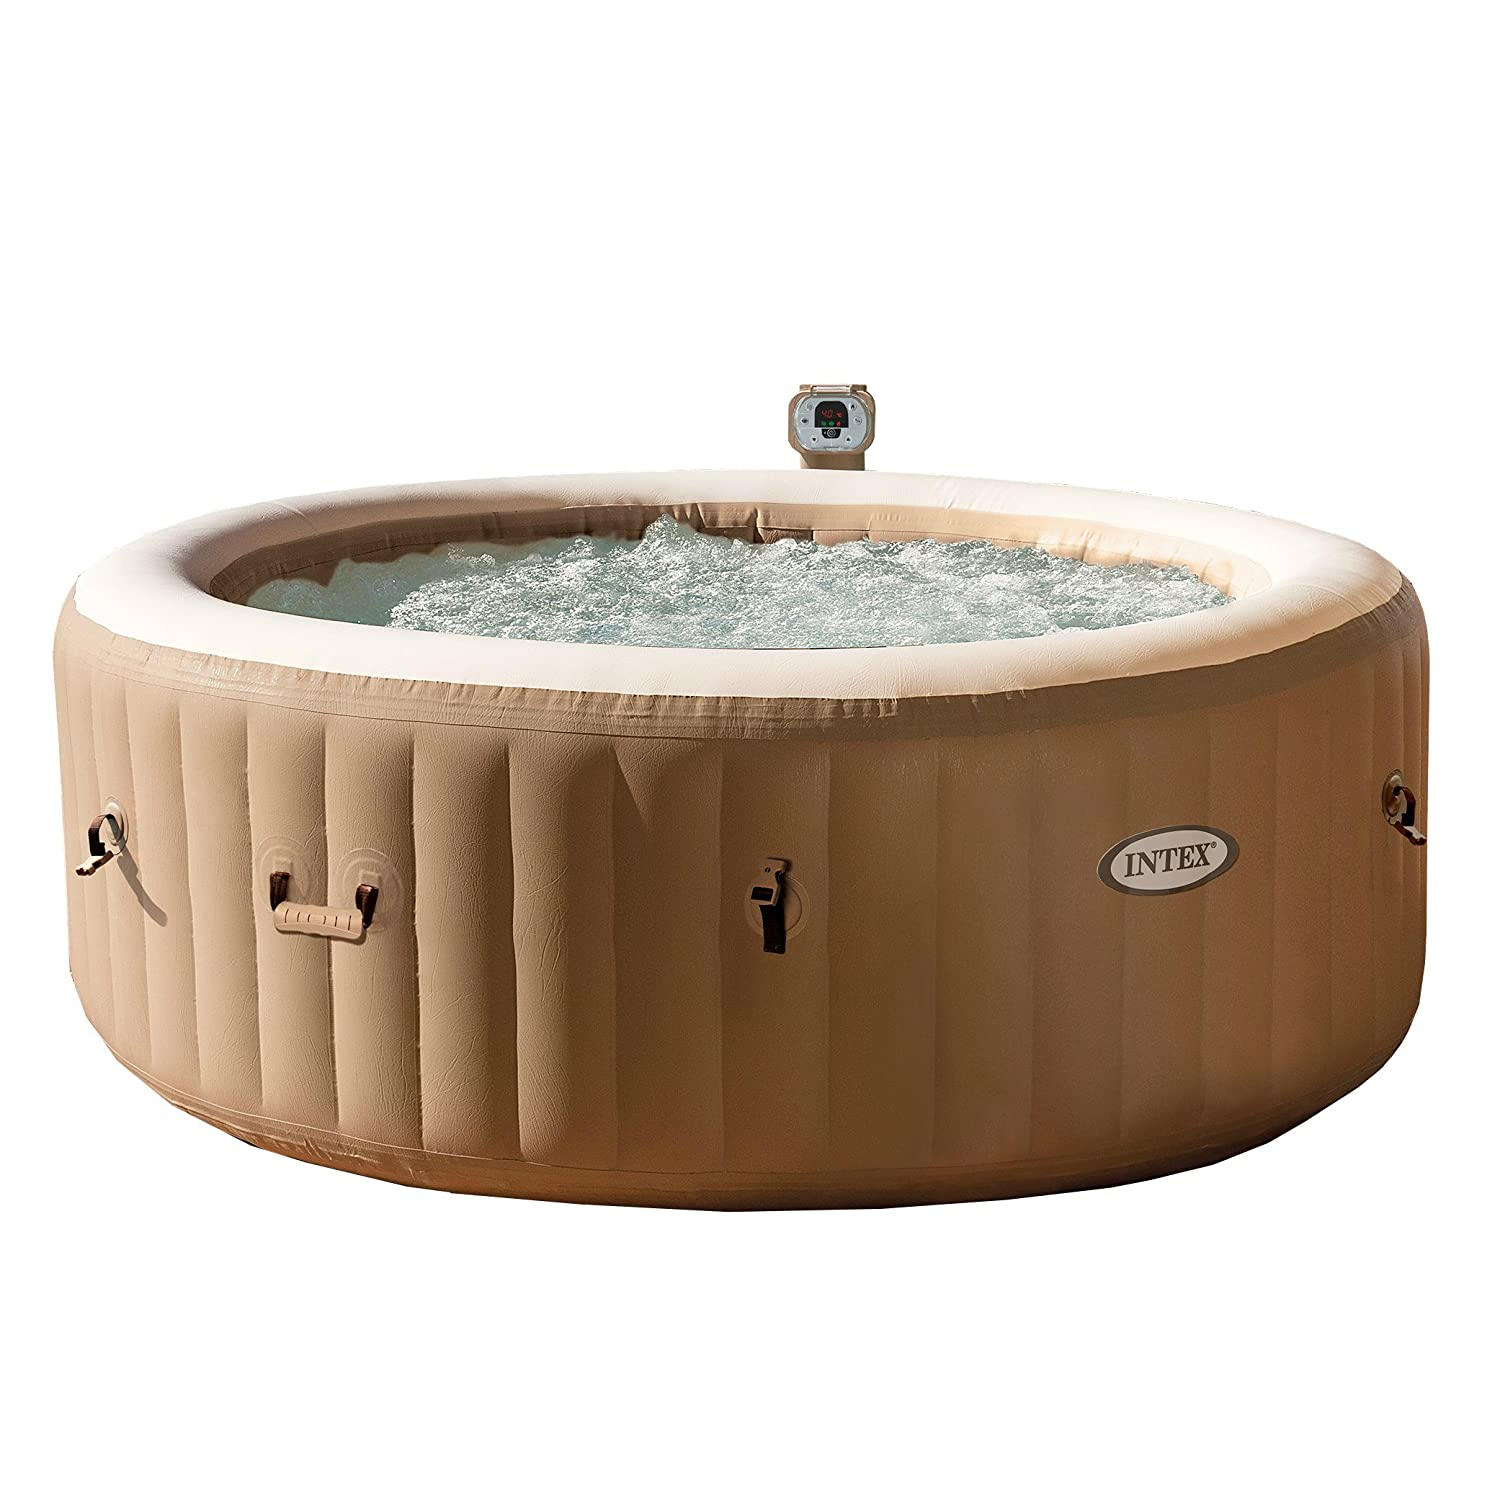 Intex Portable hard sided portable hot tub